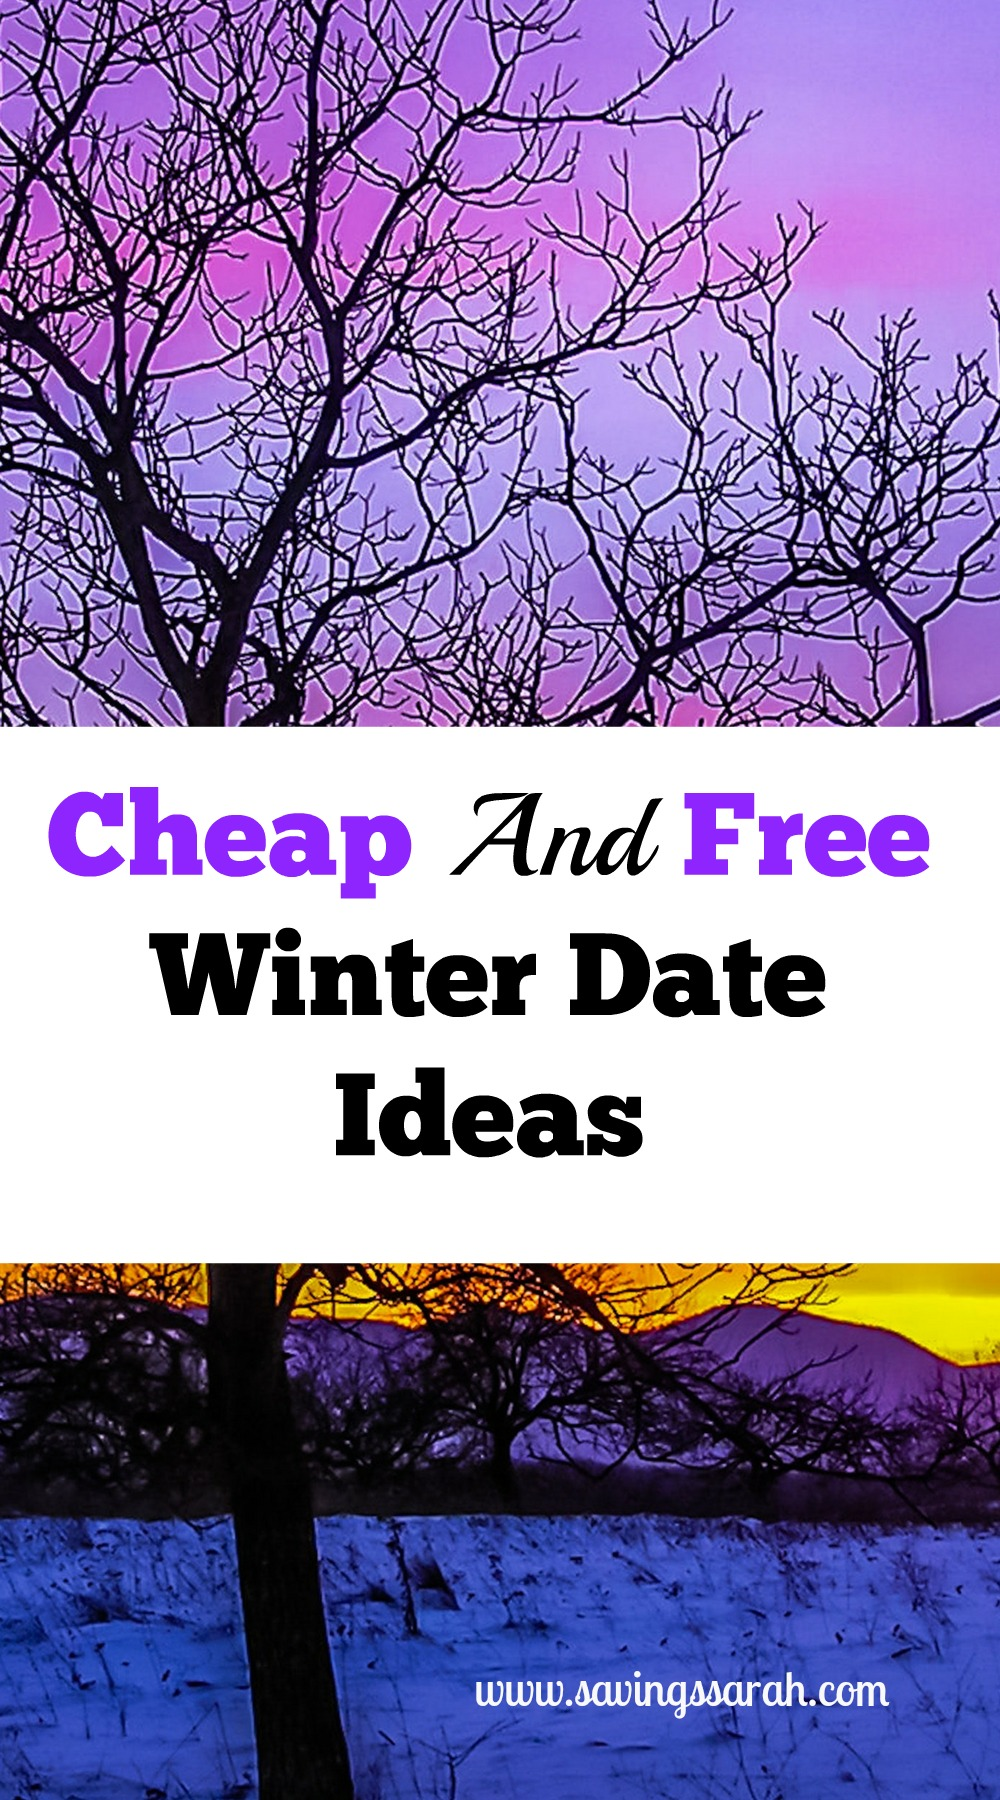 cheap and free winter date ideas - earning and saving with sarah